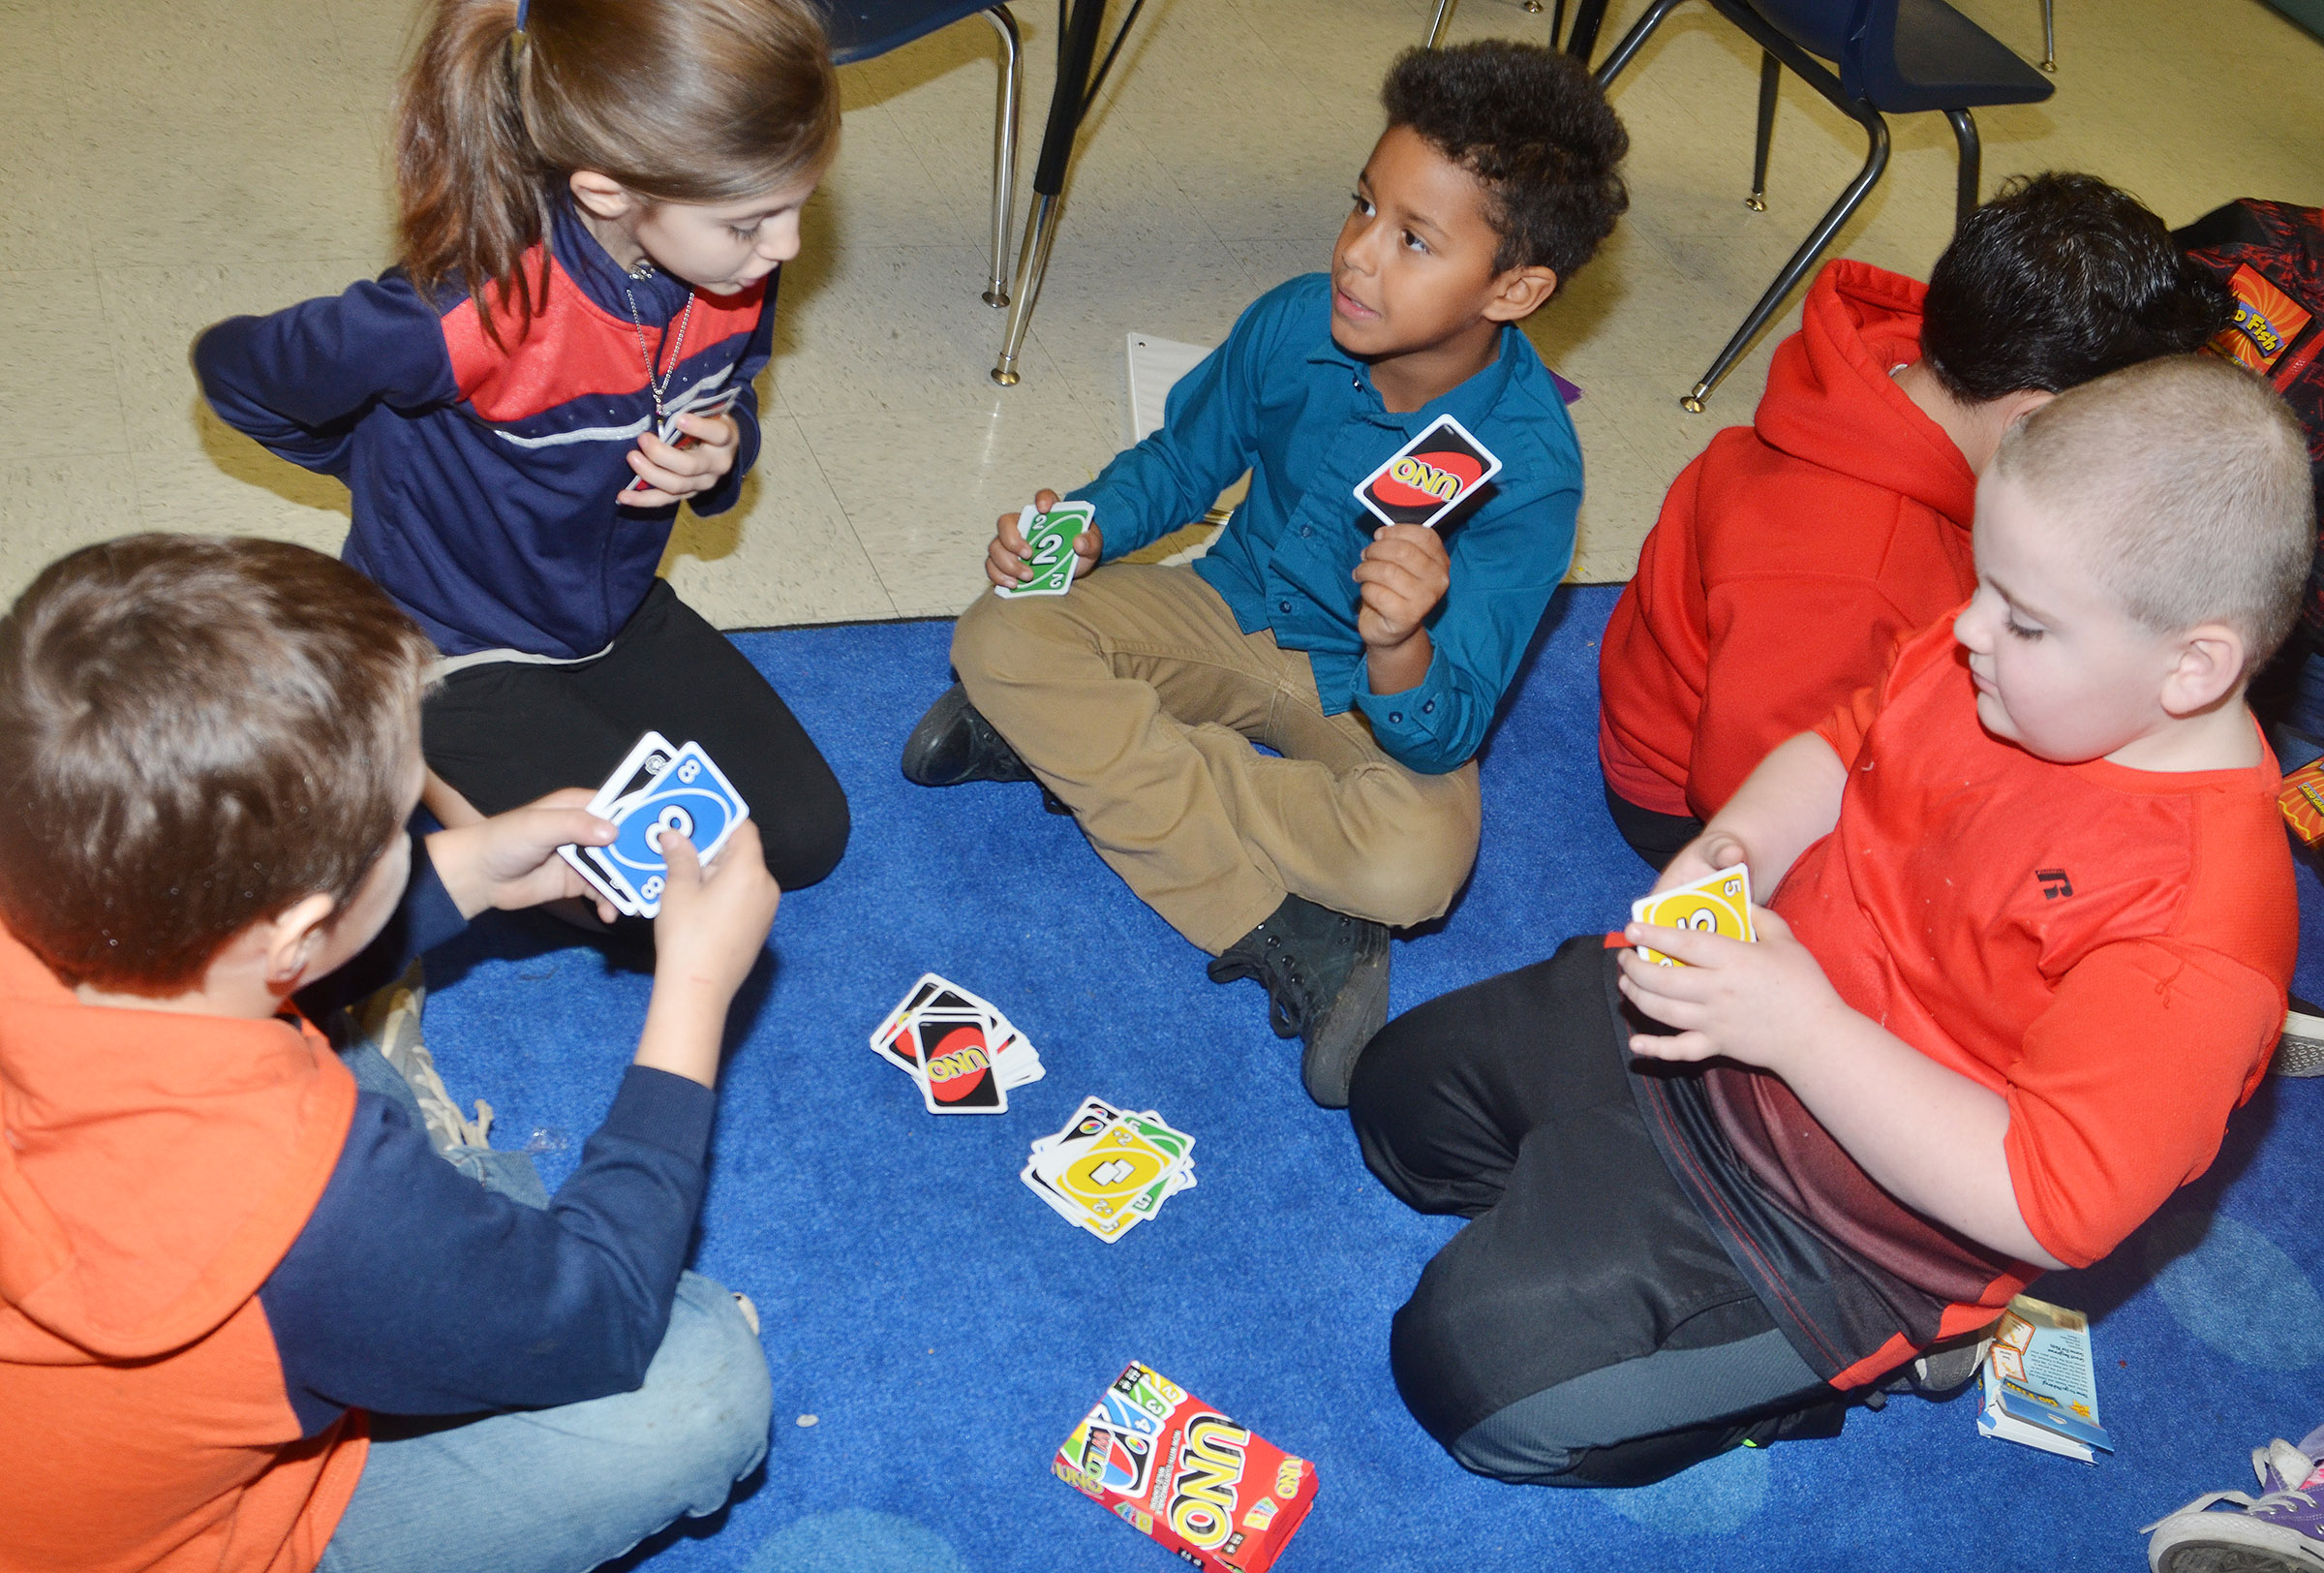 CES second-graders play Uno. From left are Jaxson Hunt, Madison Choate, Carter Bell and Drake Edwards.